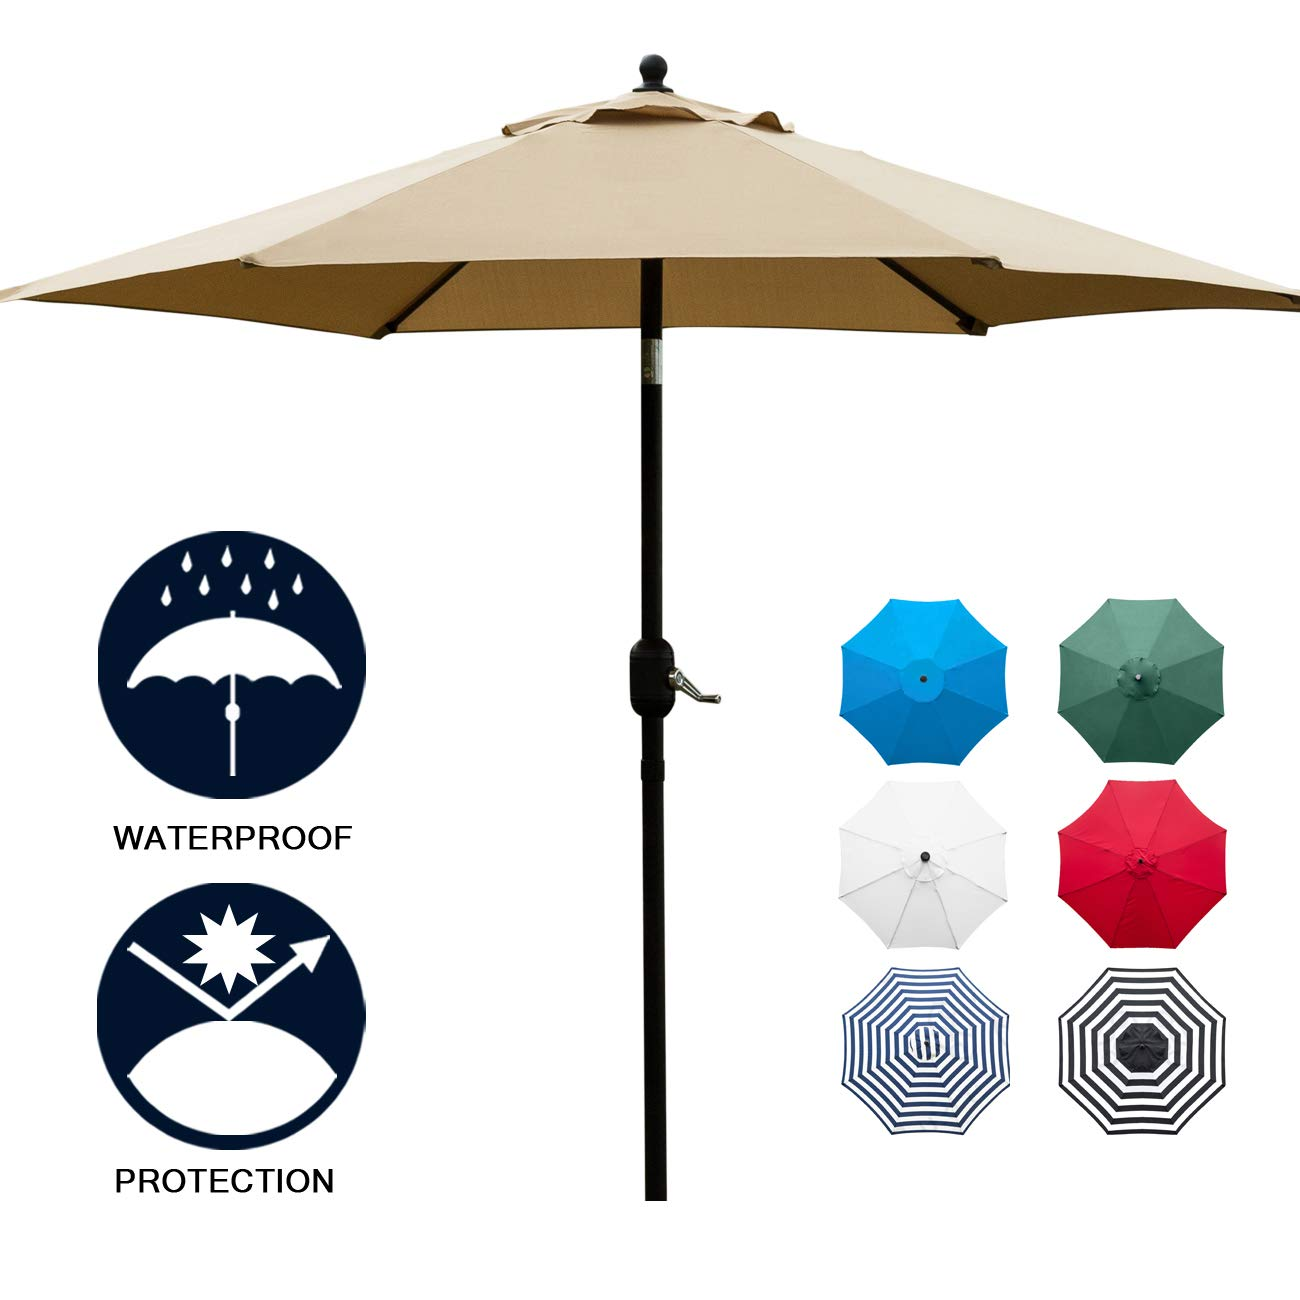 Sunnyglade 7.5' Patio Umbrella Outdoor Table Market Umbrella with Push Button Tilt/Crank, 6 Ribs (Tan)